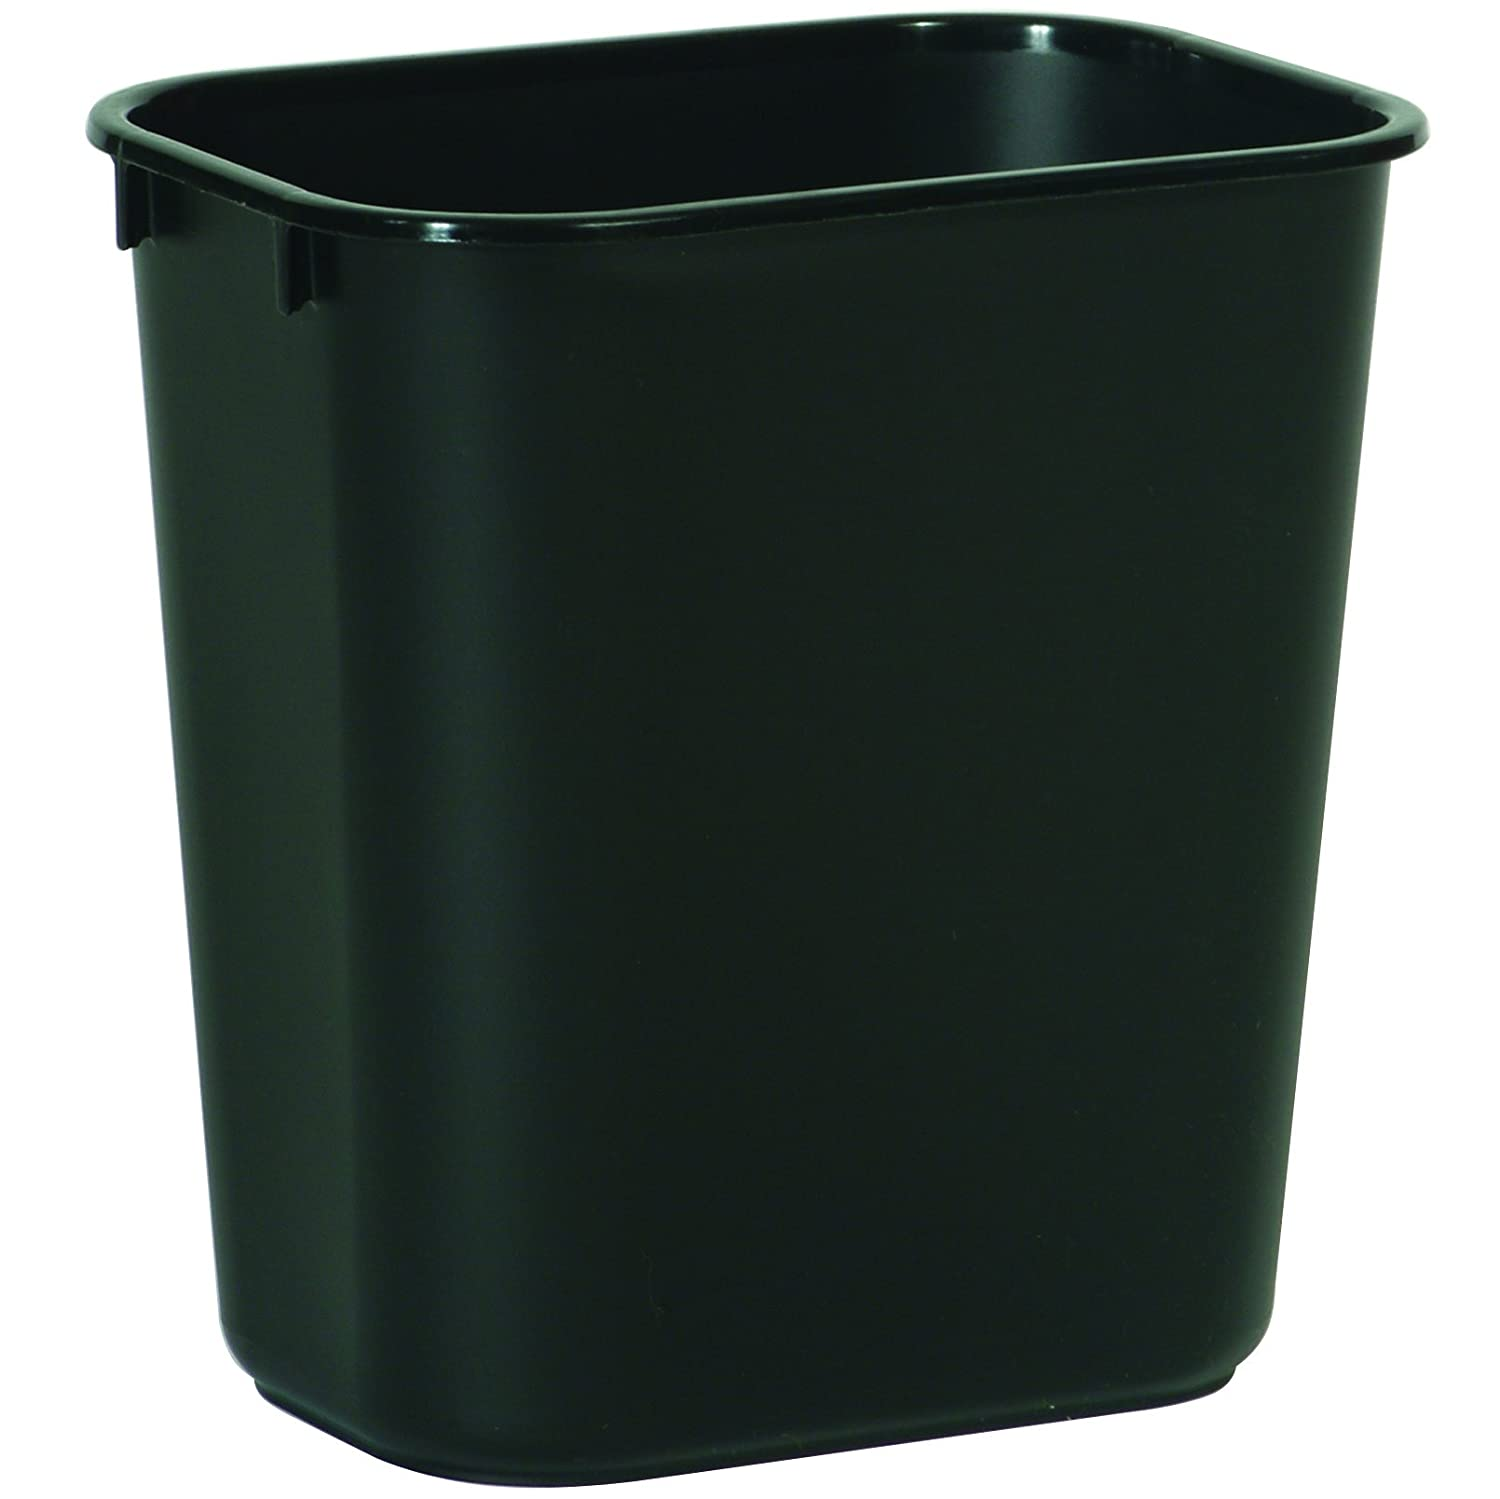 Rubbermaid Commercial Products FG295500BLA Plastic Resin Deskside Wastebasket, 3.5 Gallon/13 Quart, Black (Pack of 12)